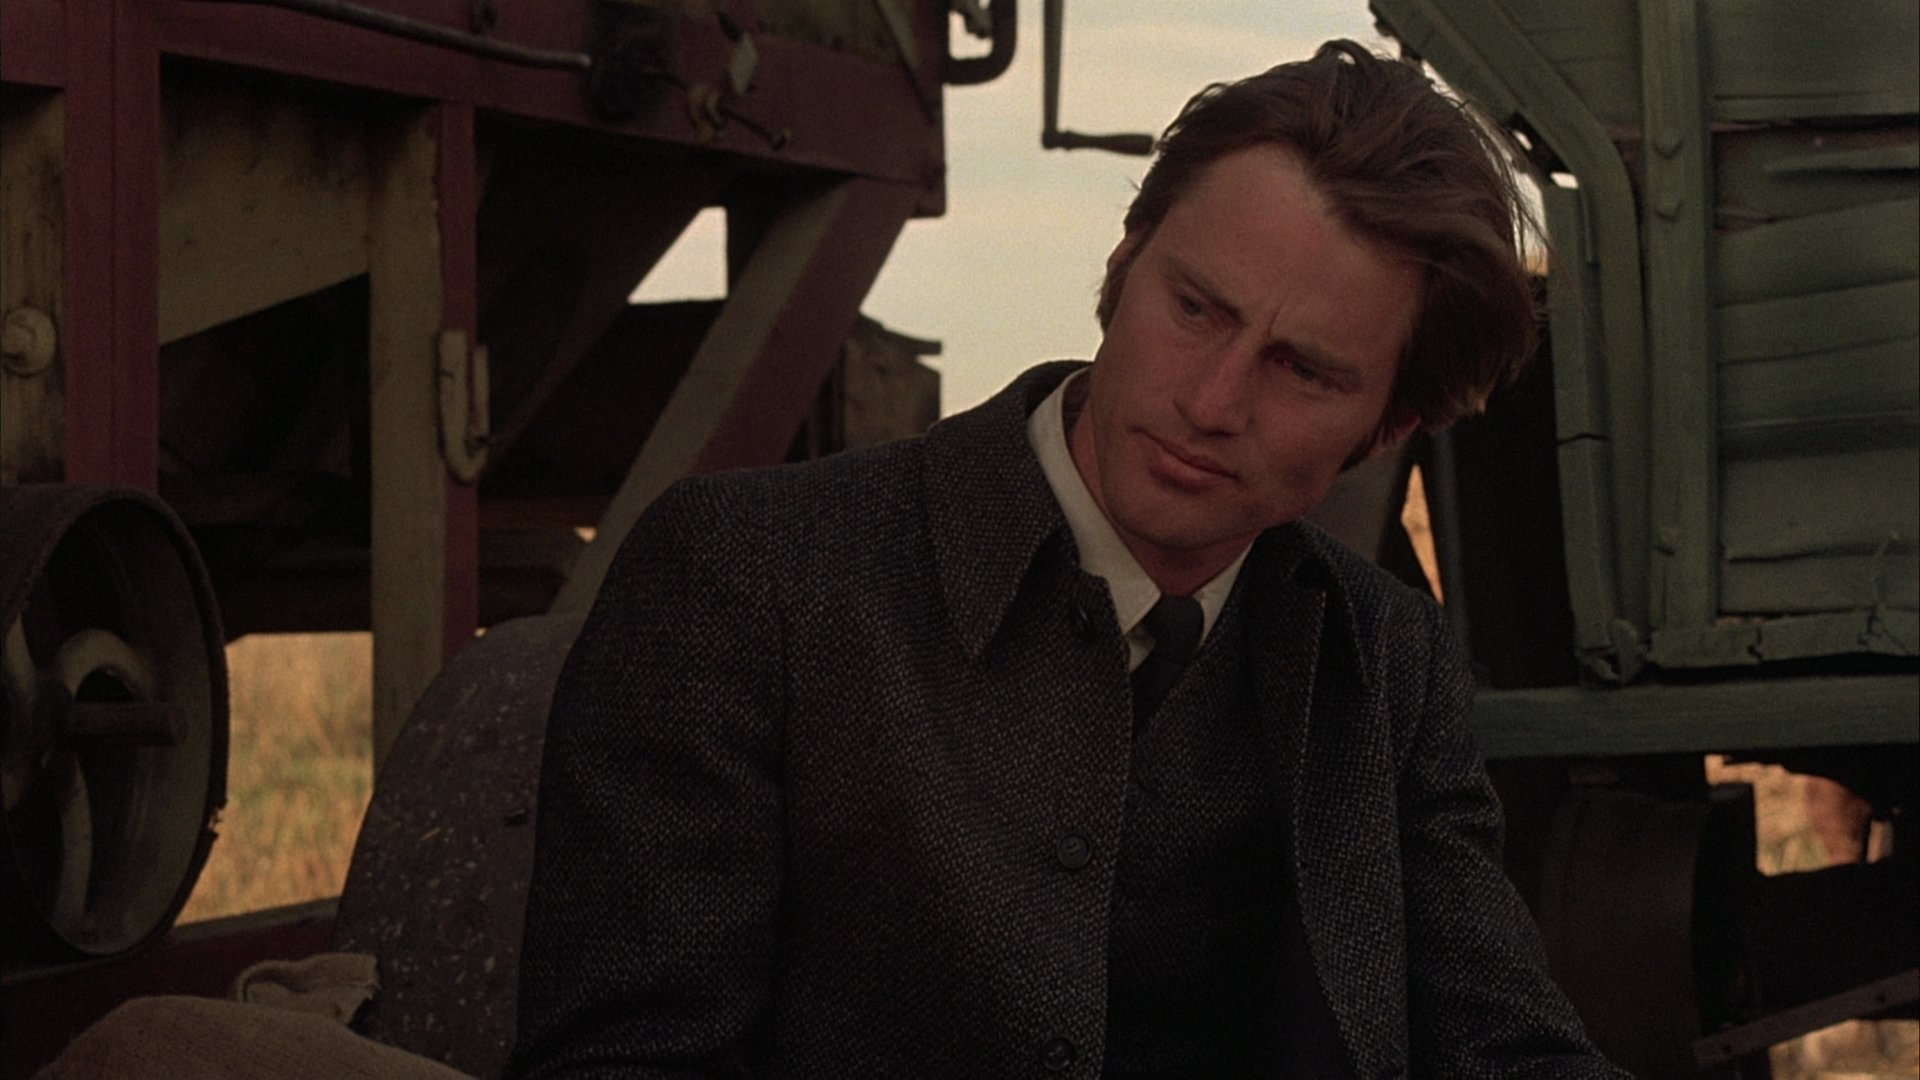 Thinking of the one and only Sam Shepard on the anniversary of his passing. https://t.co/eURoKvXOKQ https://t.co/1xNE5TkMiw